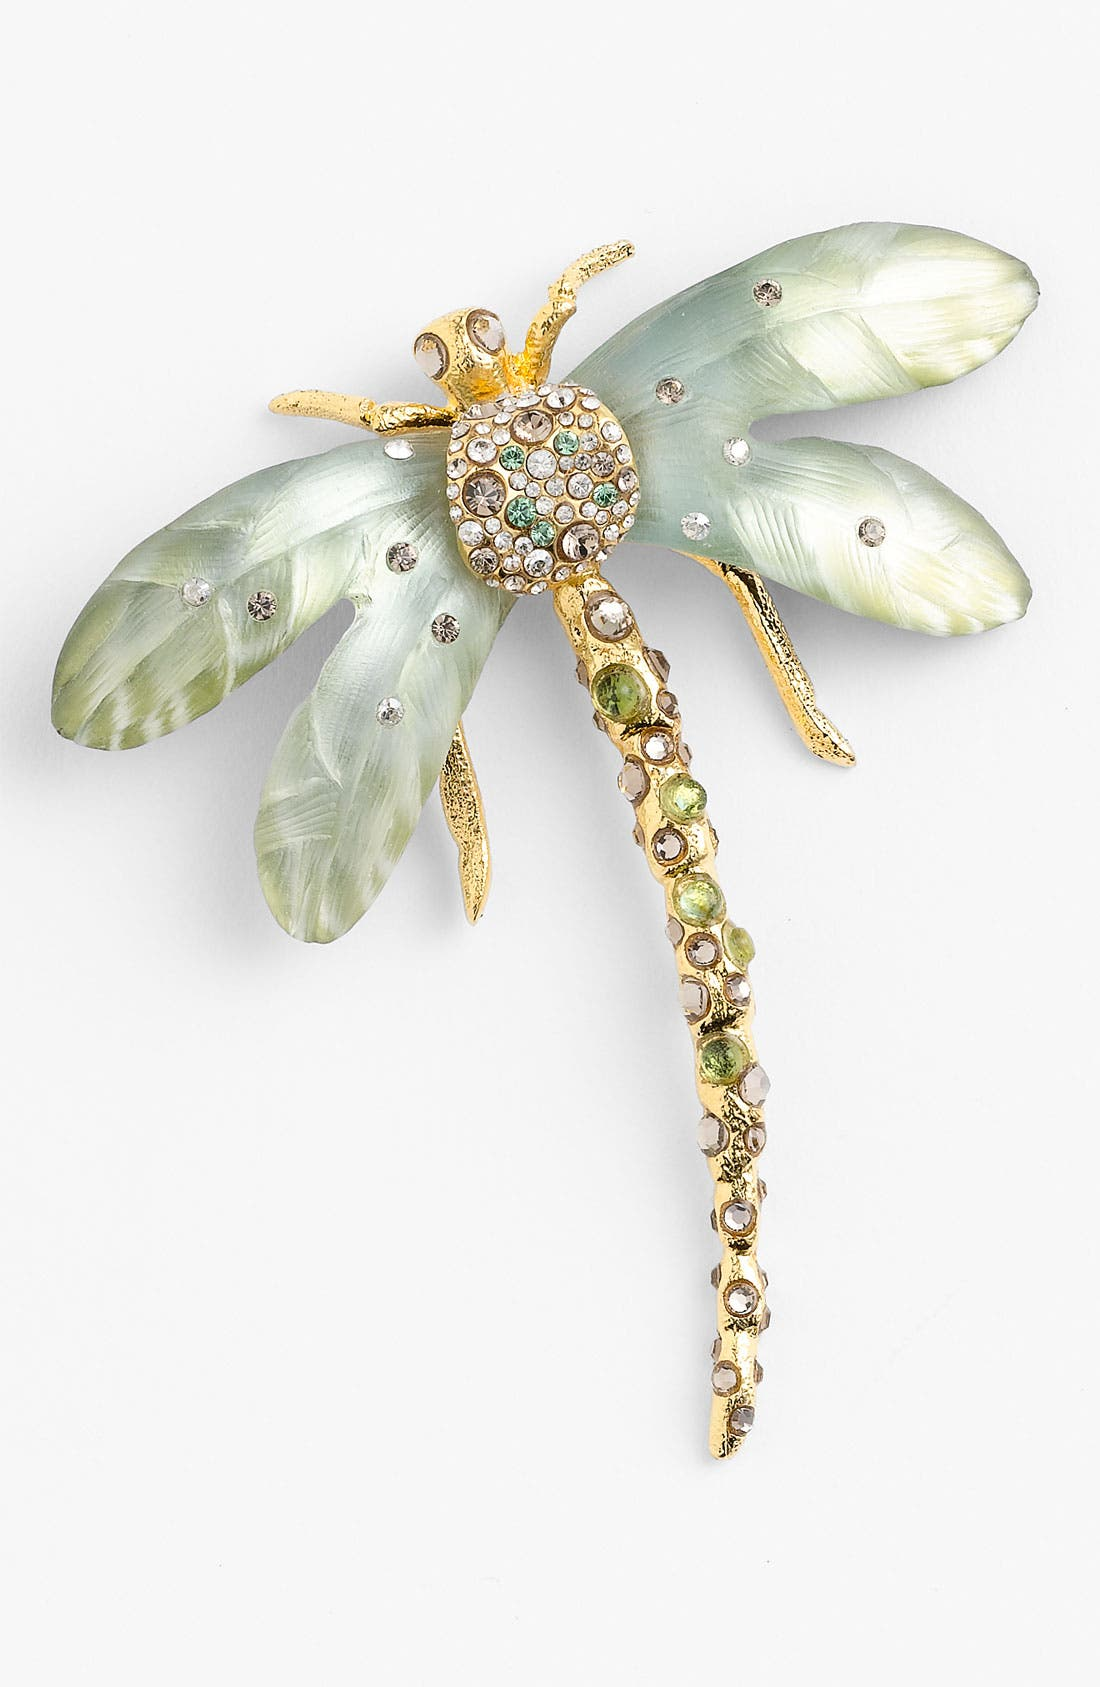 Main Image - Alexis Bittar 'Allegory' Dragonfly Statement Pin